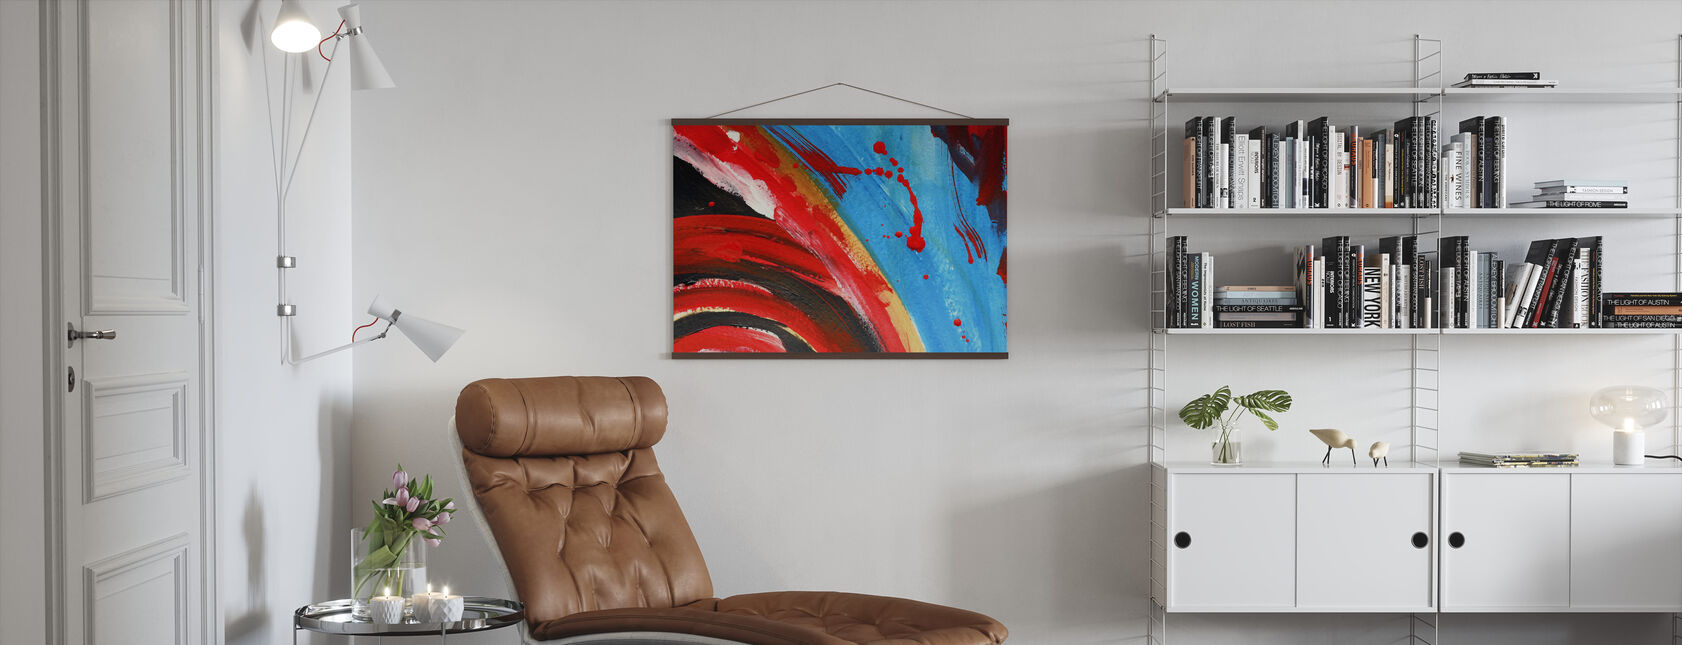 Abstract Painting - Poster - Living Room